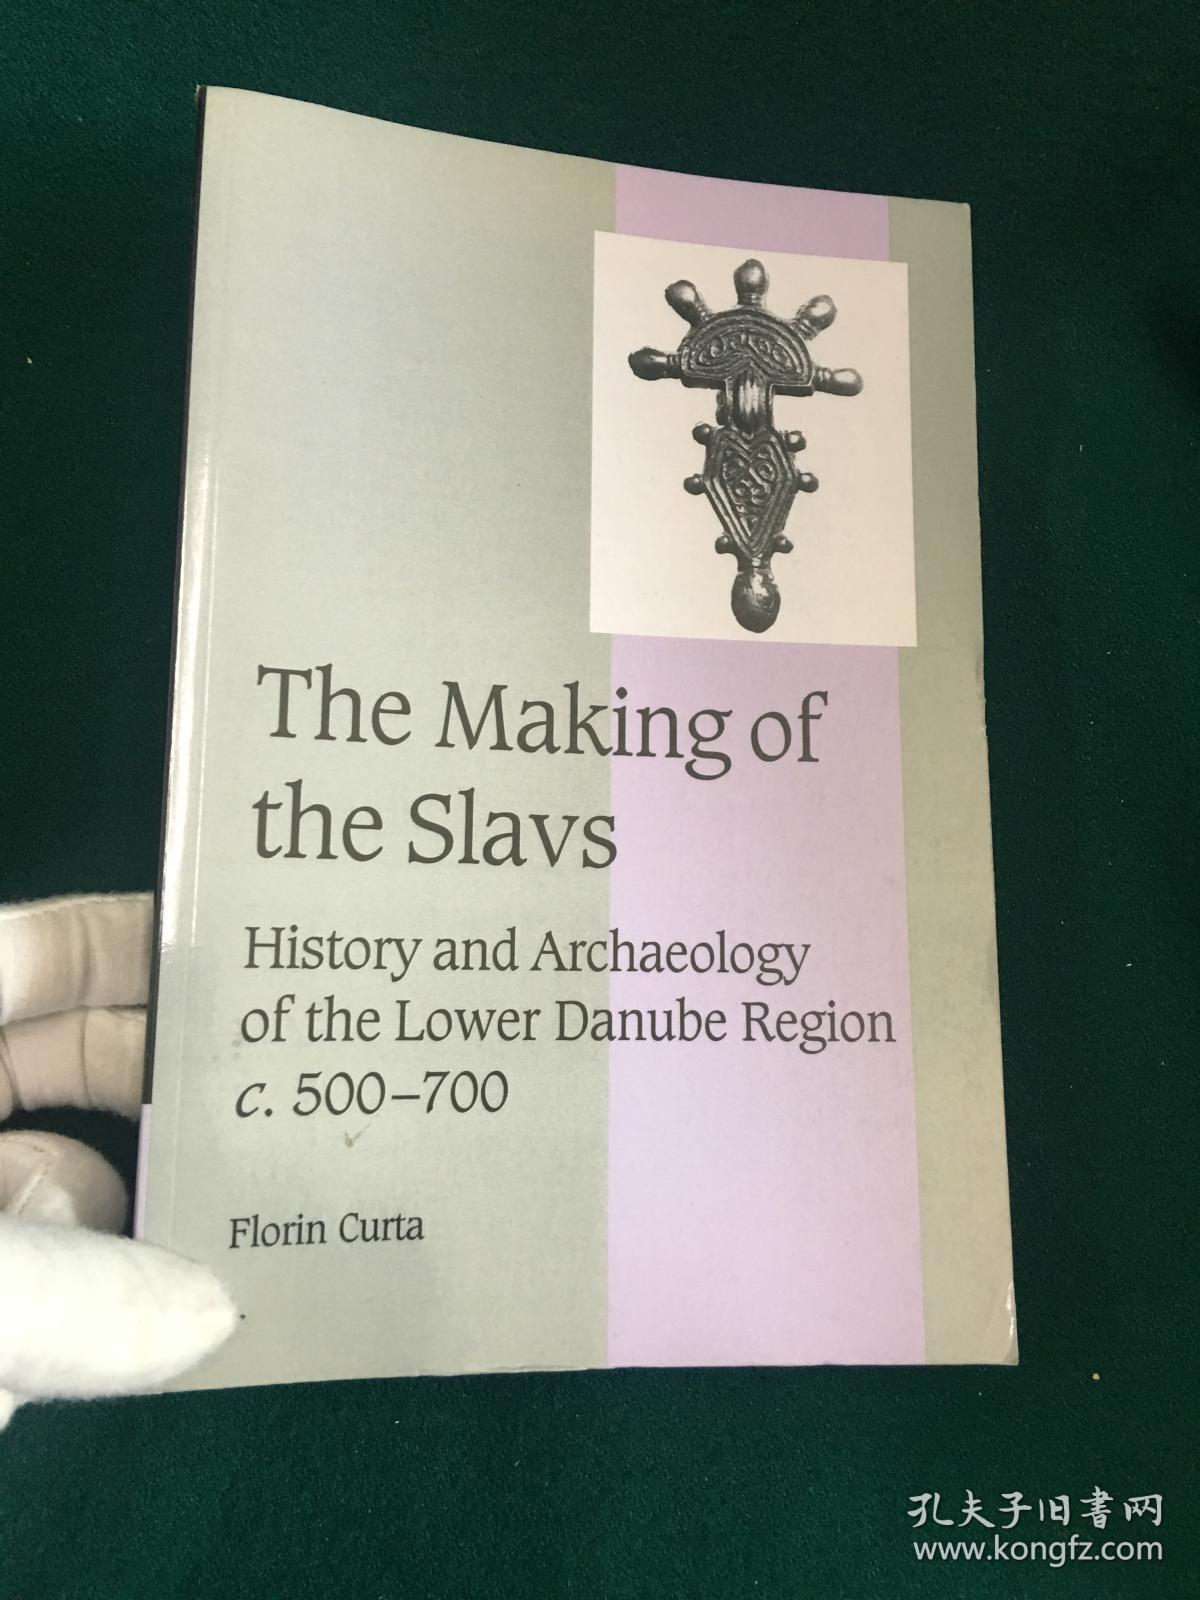 The Making of the Slaves:History and Archaeology of the Lower Danube Region c.500-700【制造奴隶:多瑙河下游地区的历史和考古学 C.500-700】